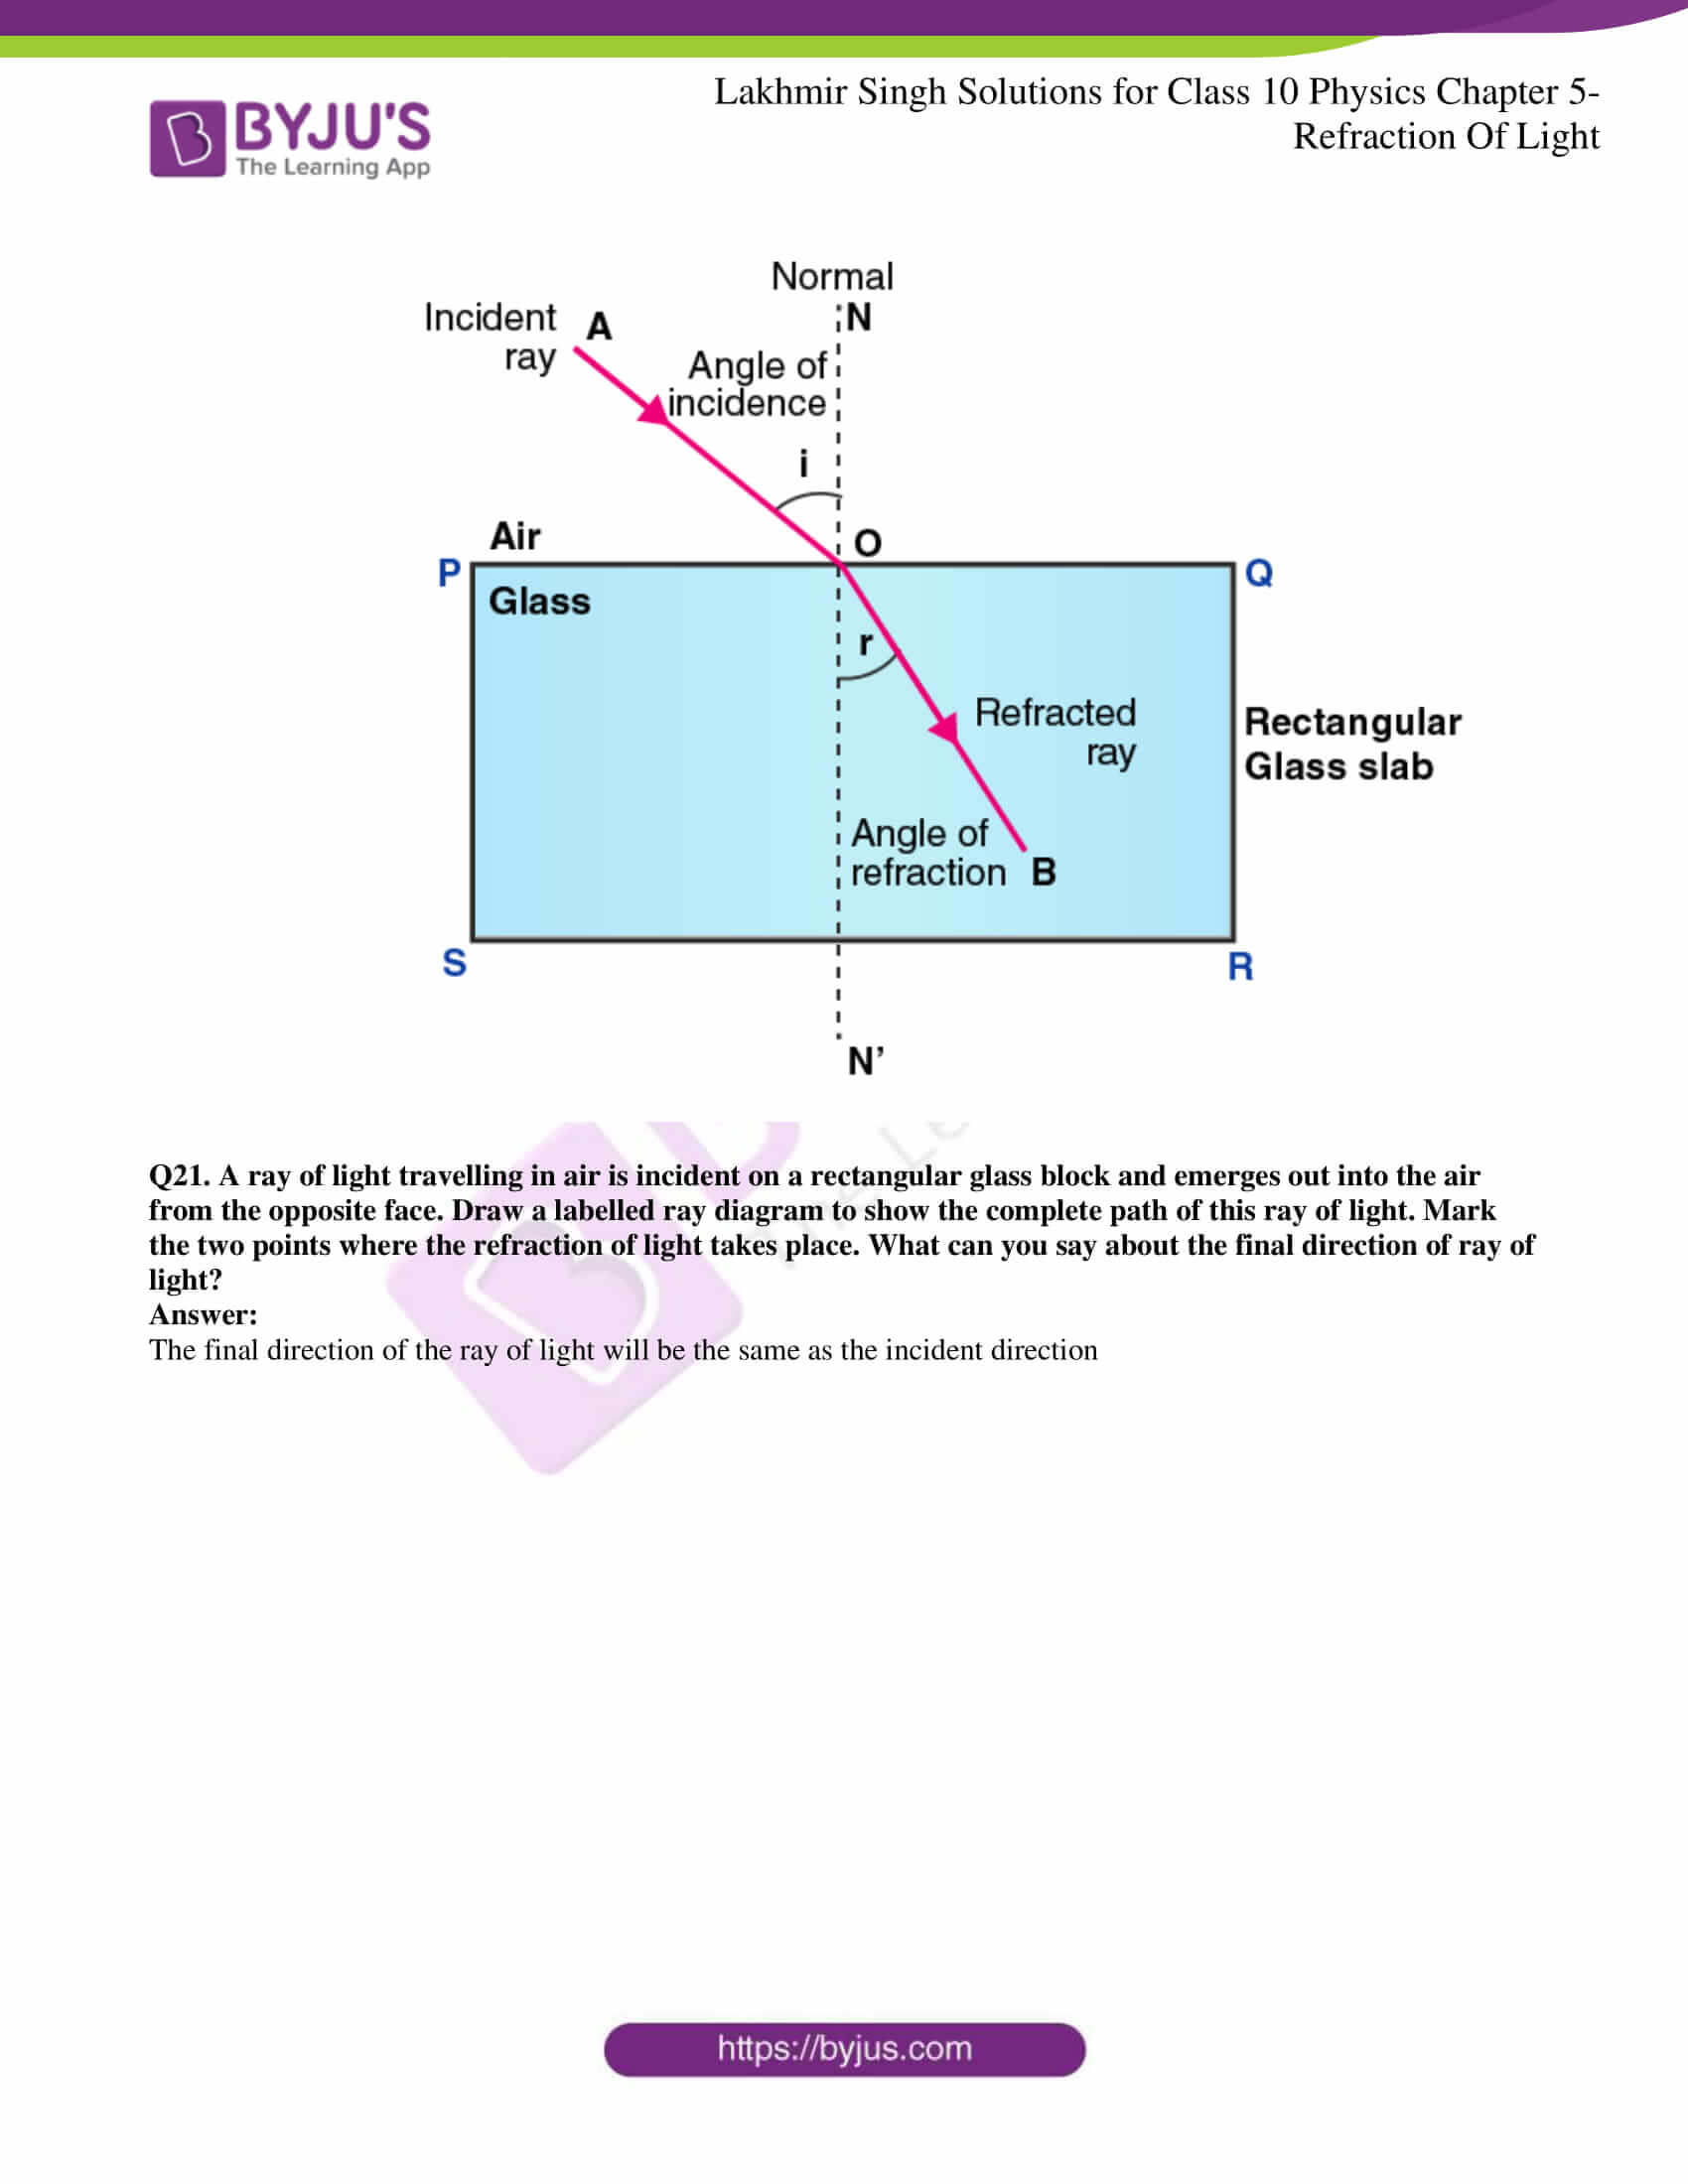 lakhmir singh solutions class 10 physics chapter 5 05